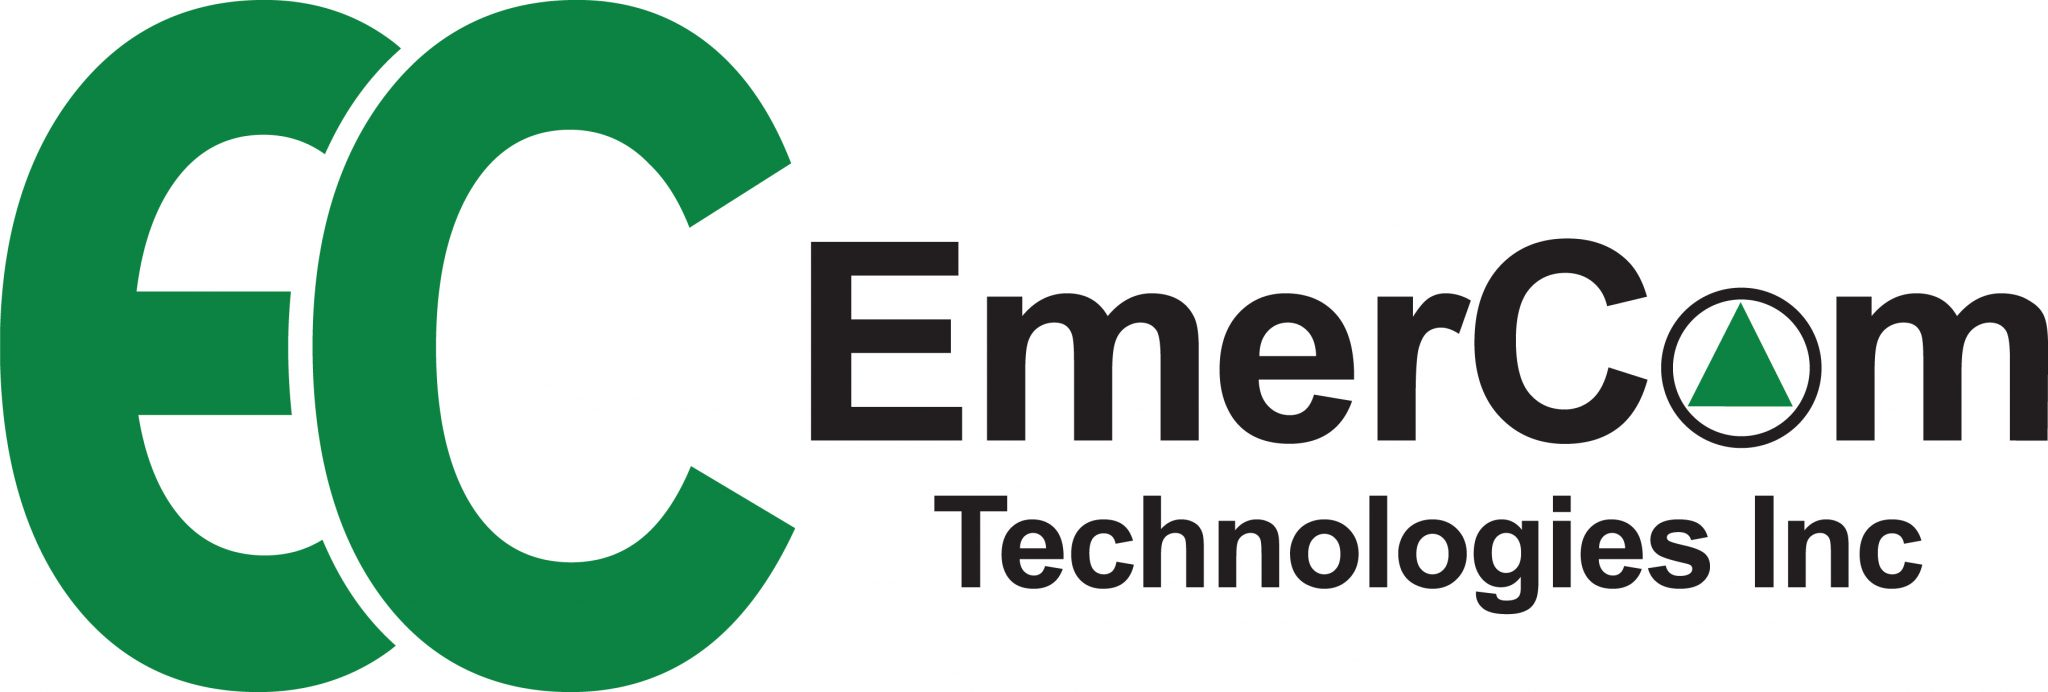 EmerCom Technologies Inc.